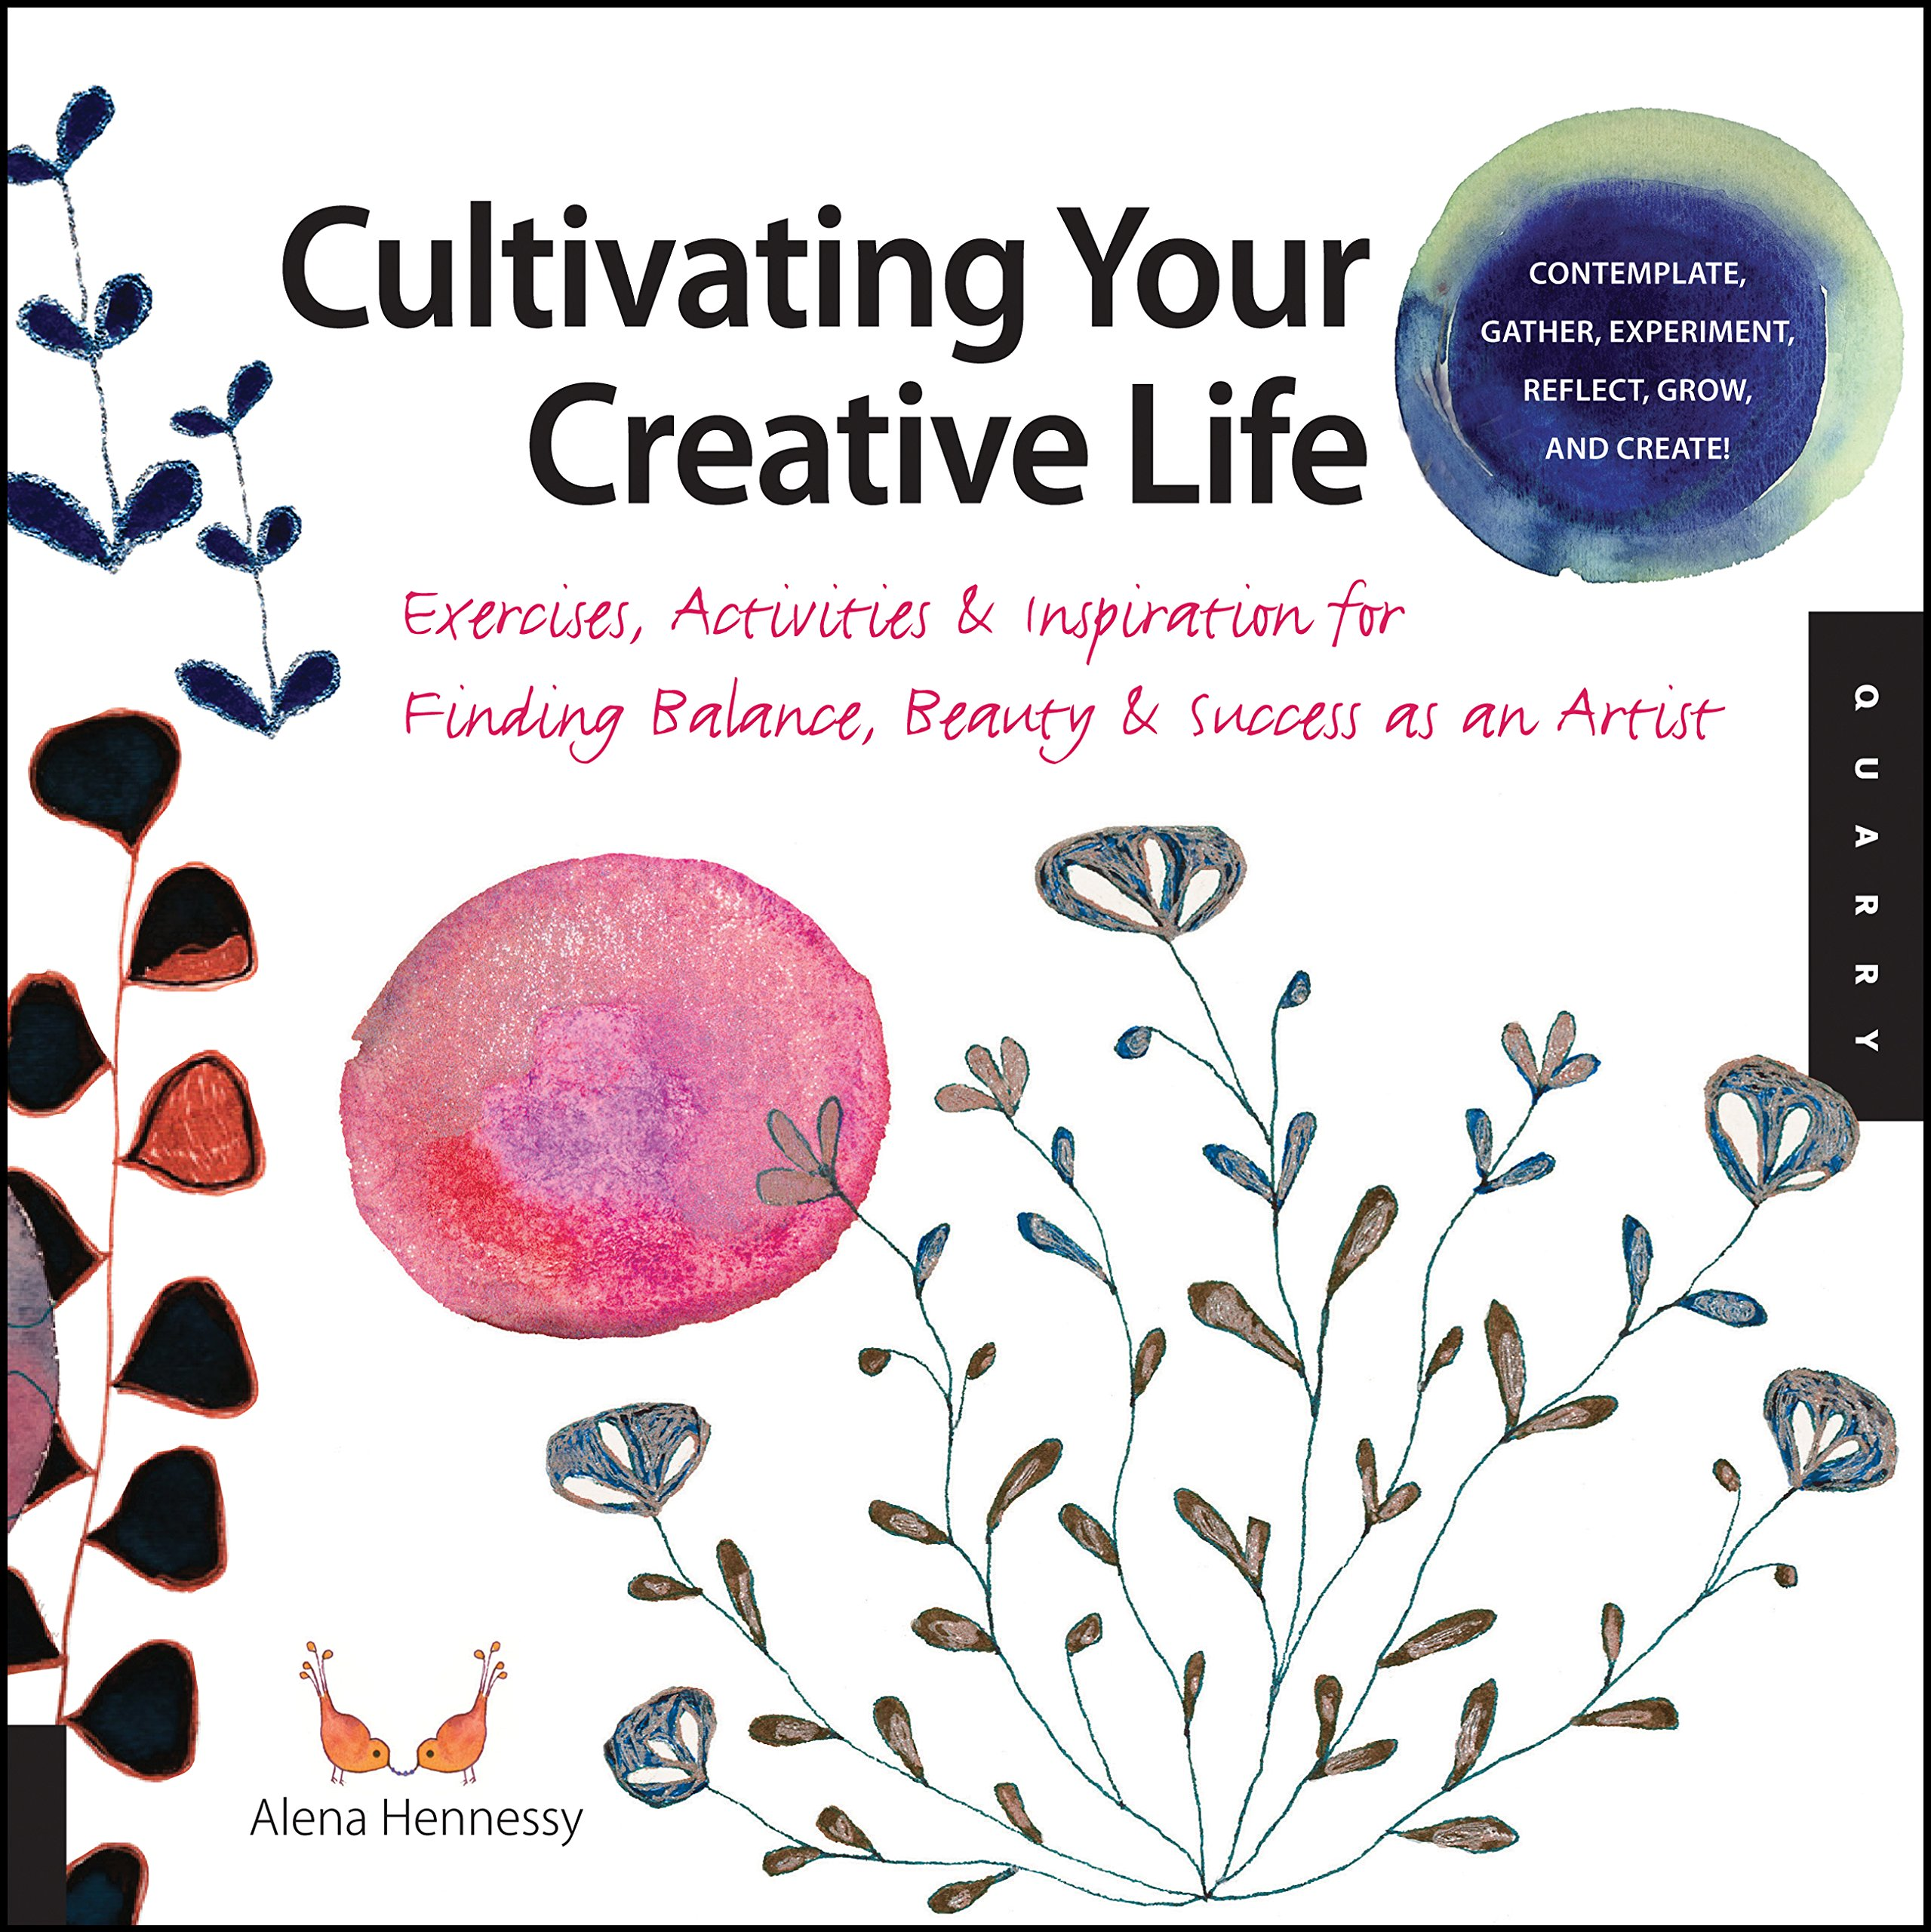 Cultivating Your Creative Life: Exercises, Activities, and Inspiration for Finding Balance, Beauty, and Success as an Artist pdf